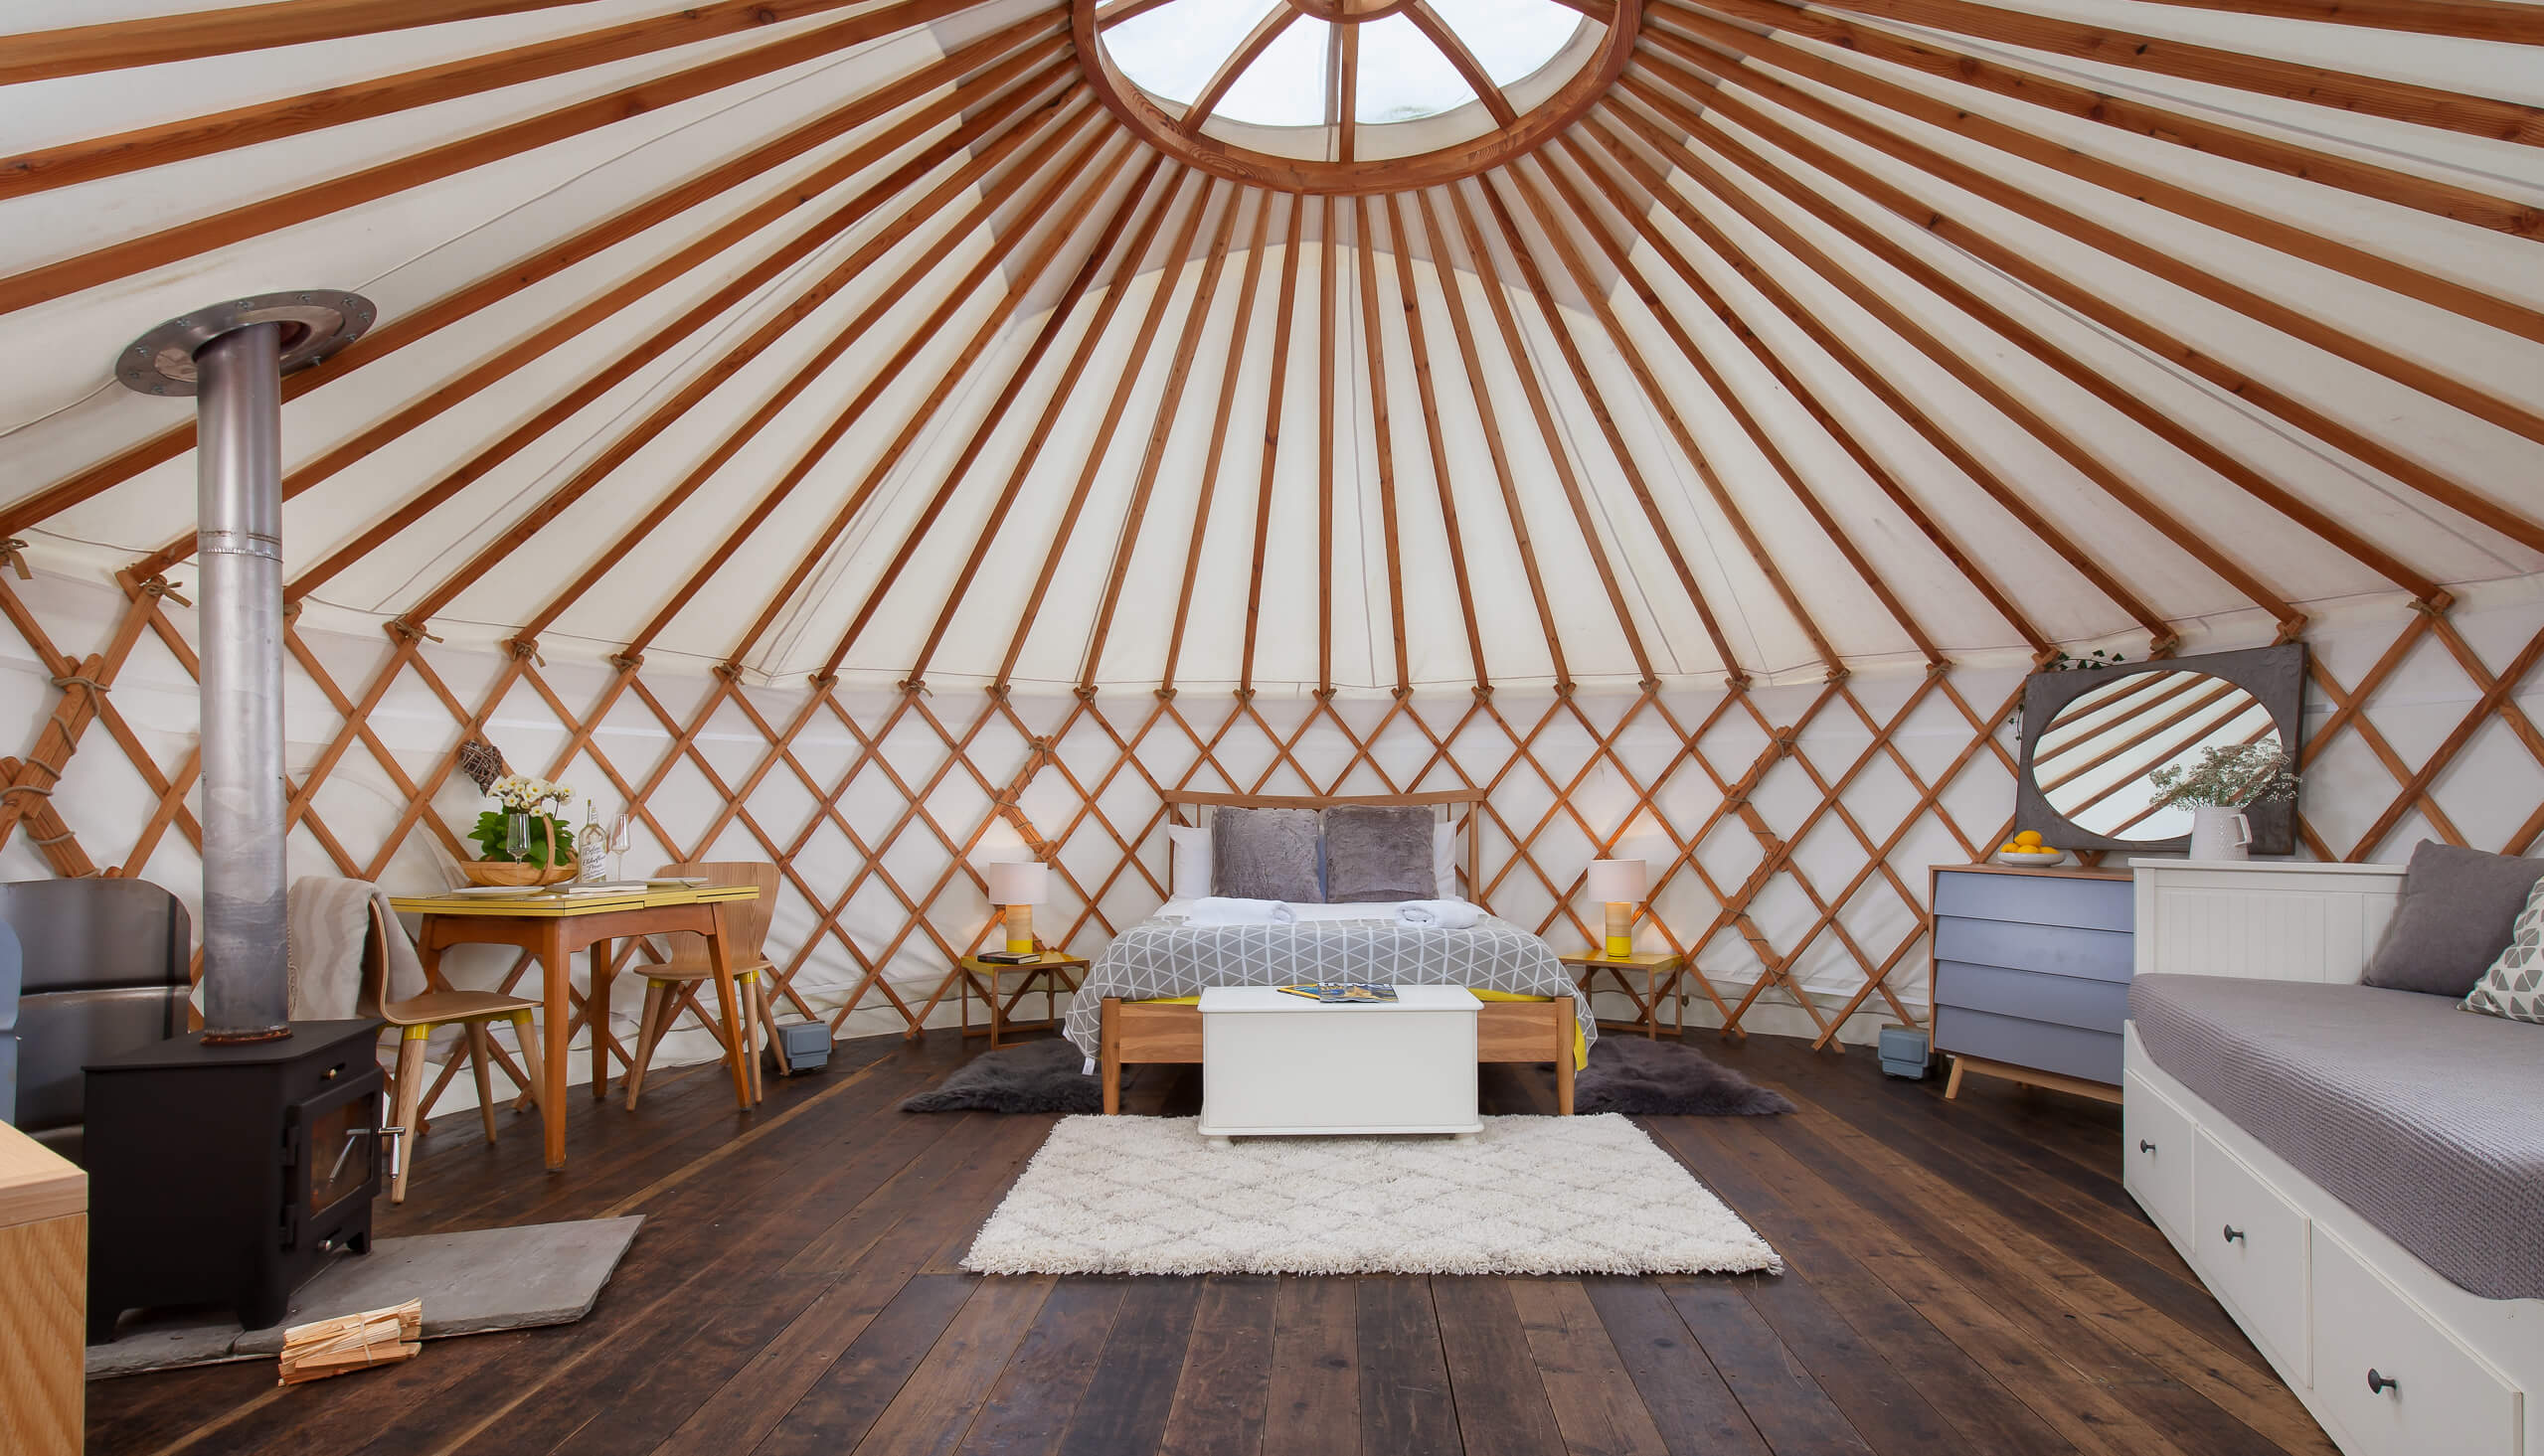 Willow Yurt The Retreat